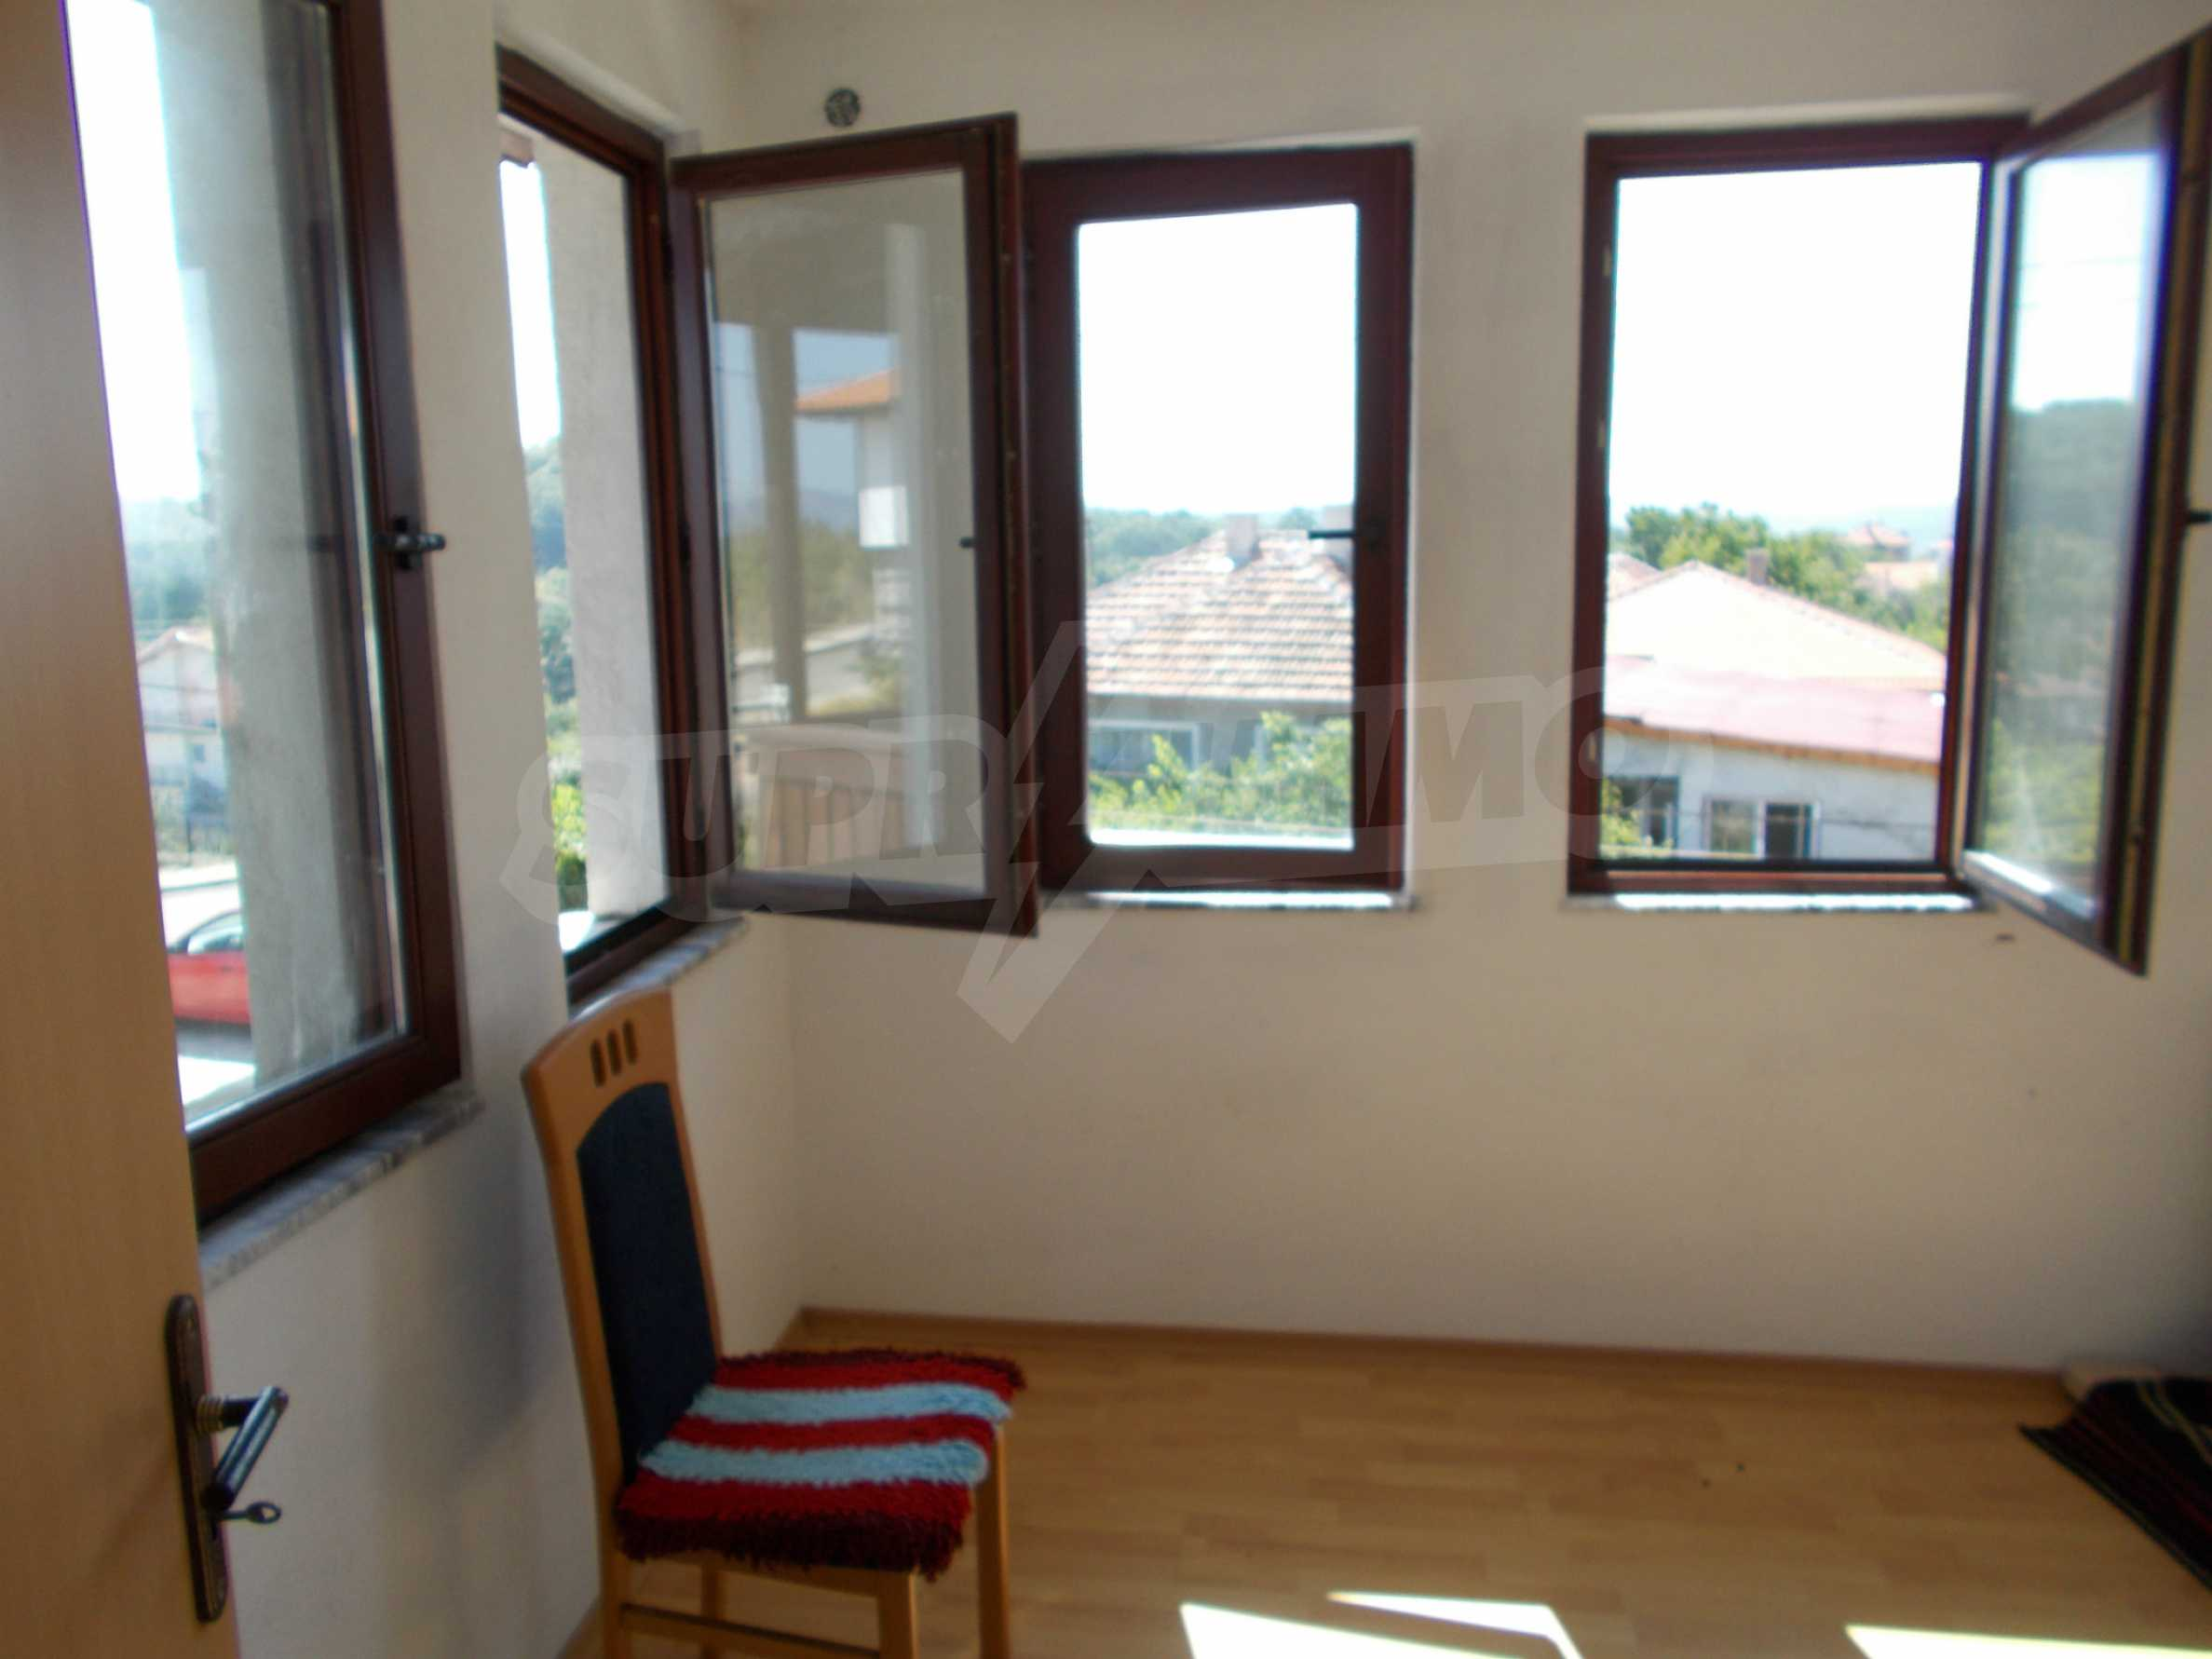 Two-storey house for sale near Burgas 19